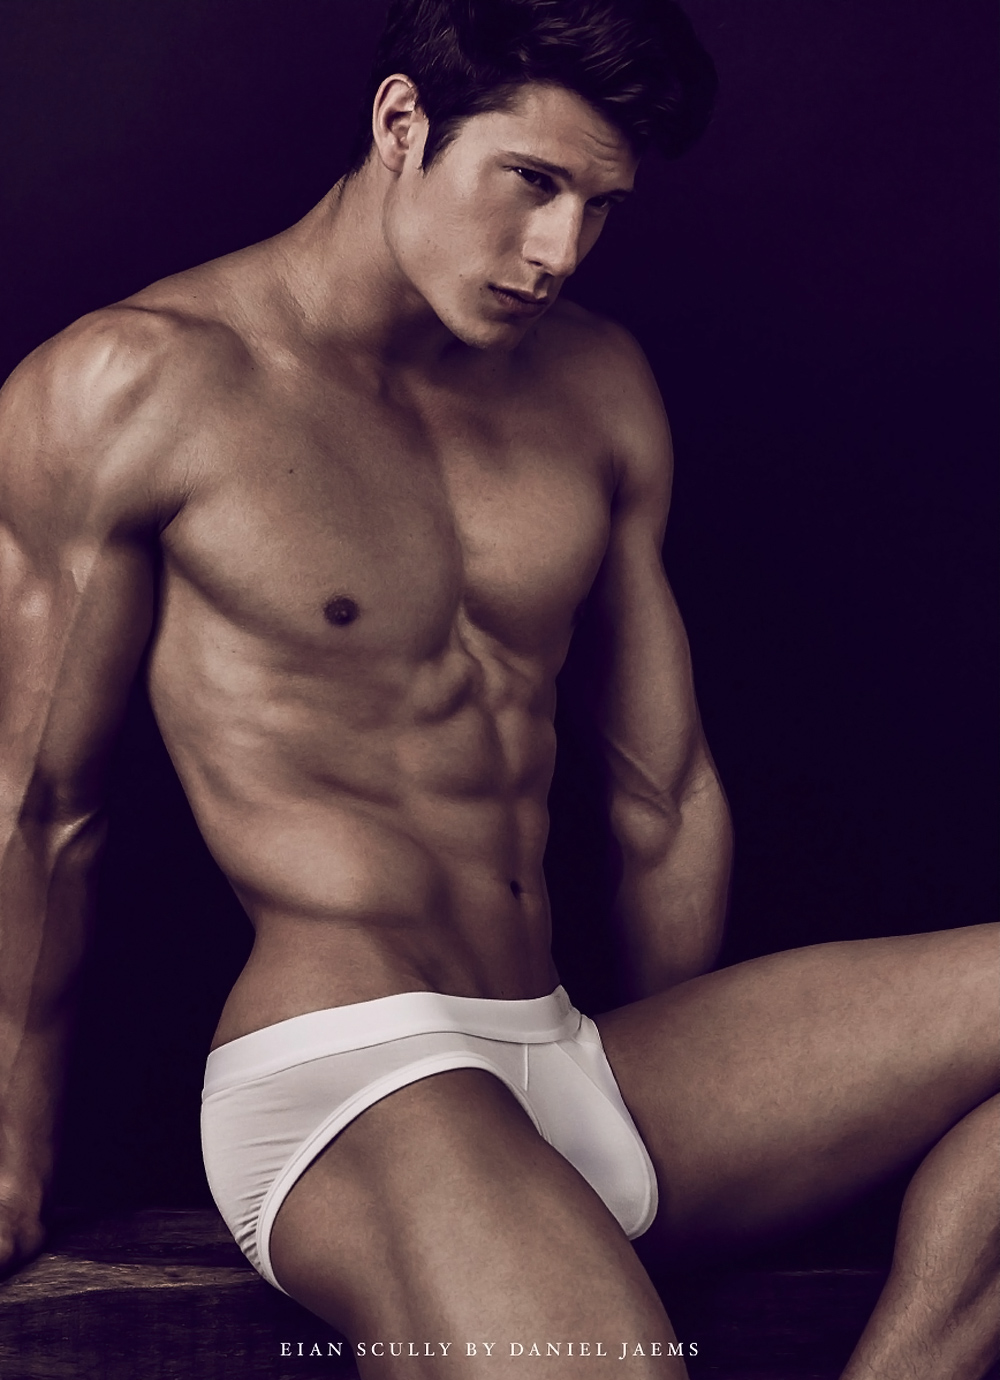 Eian Scully by Daniel Jaem 2